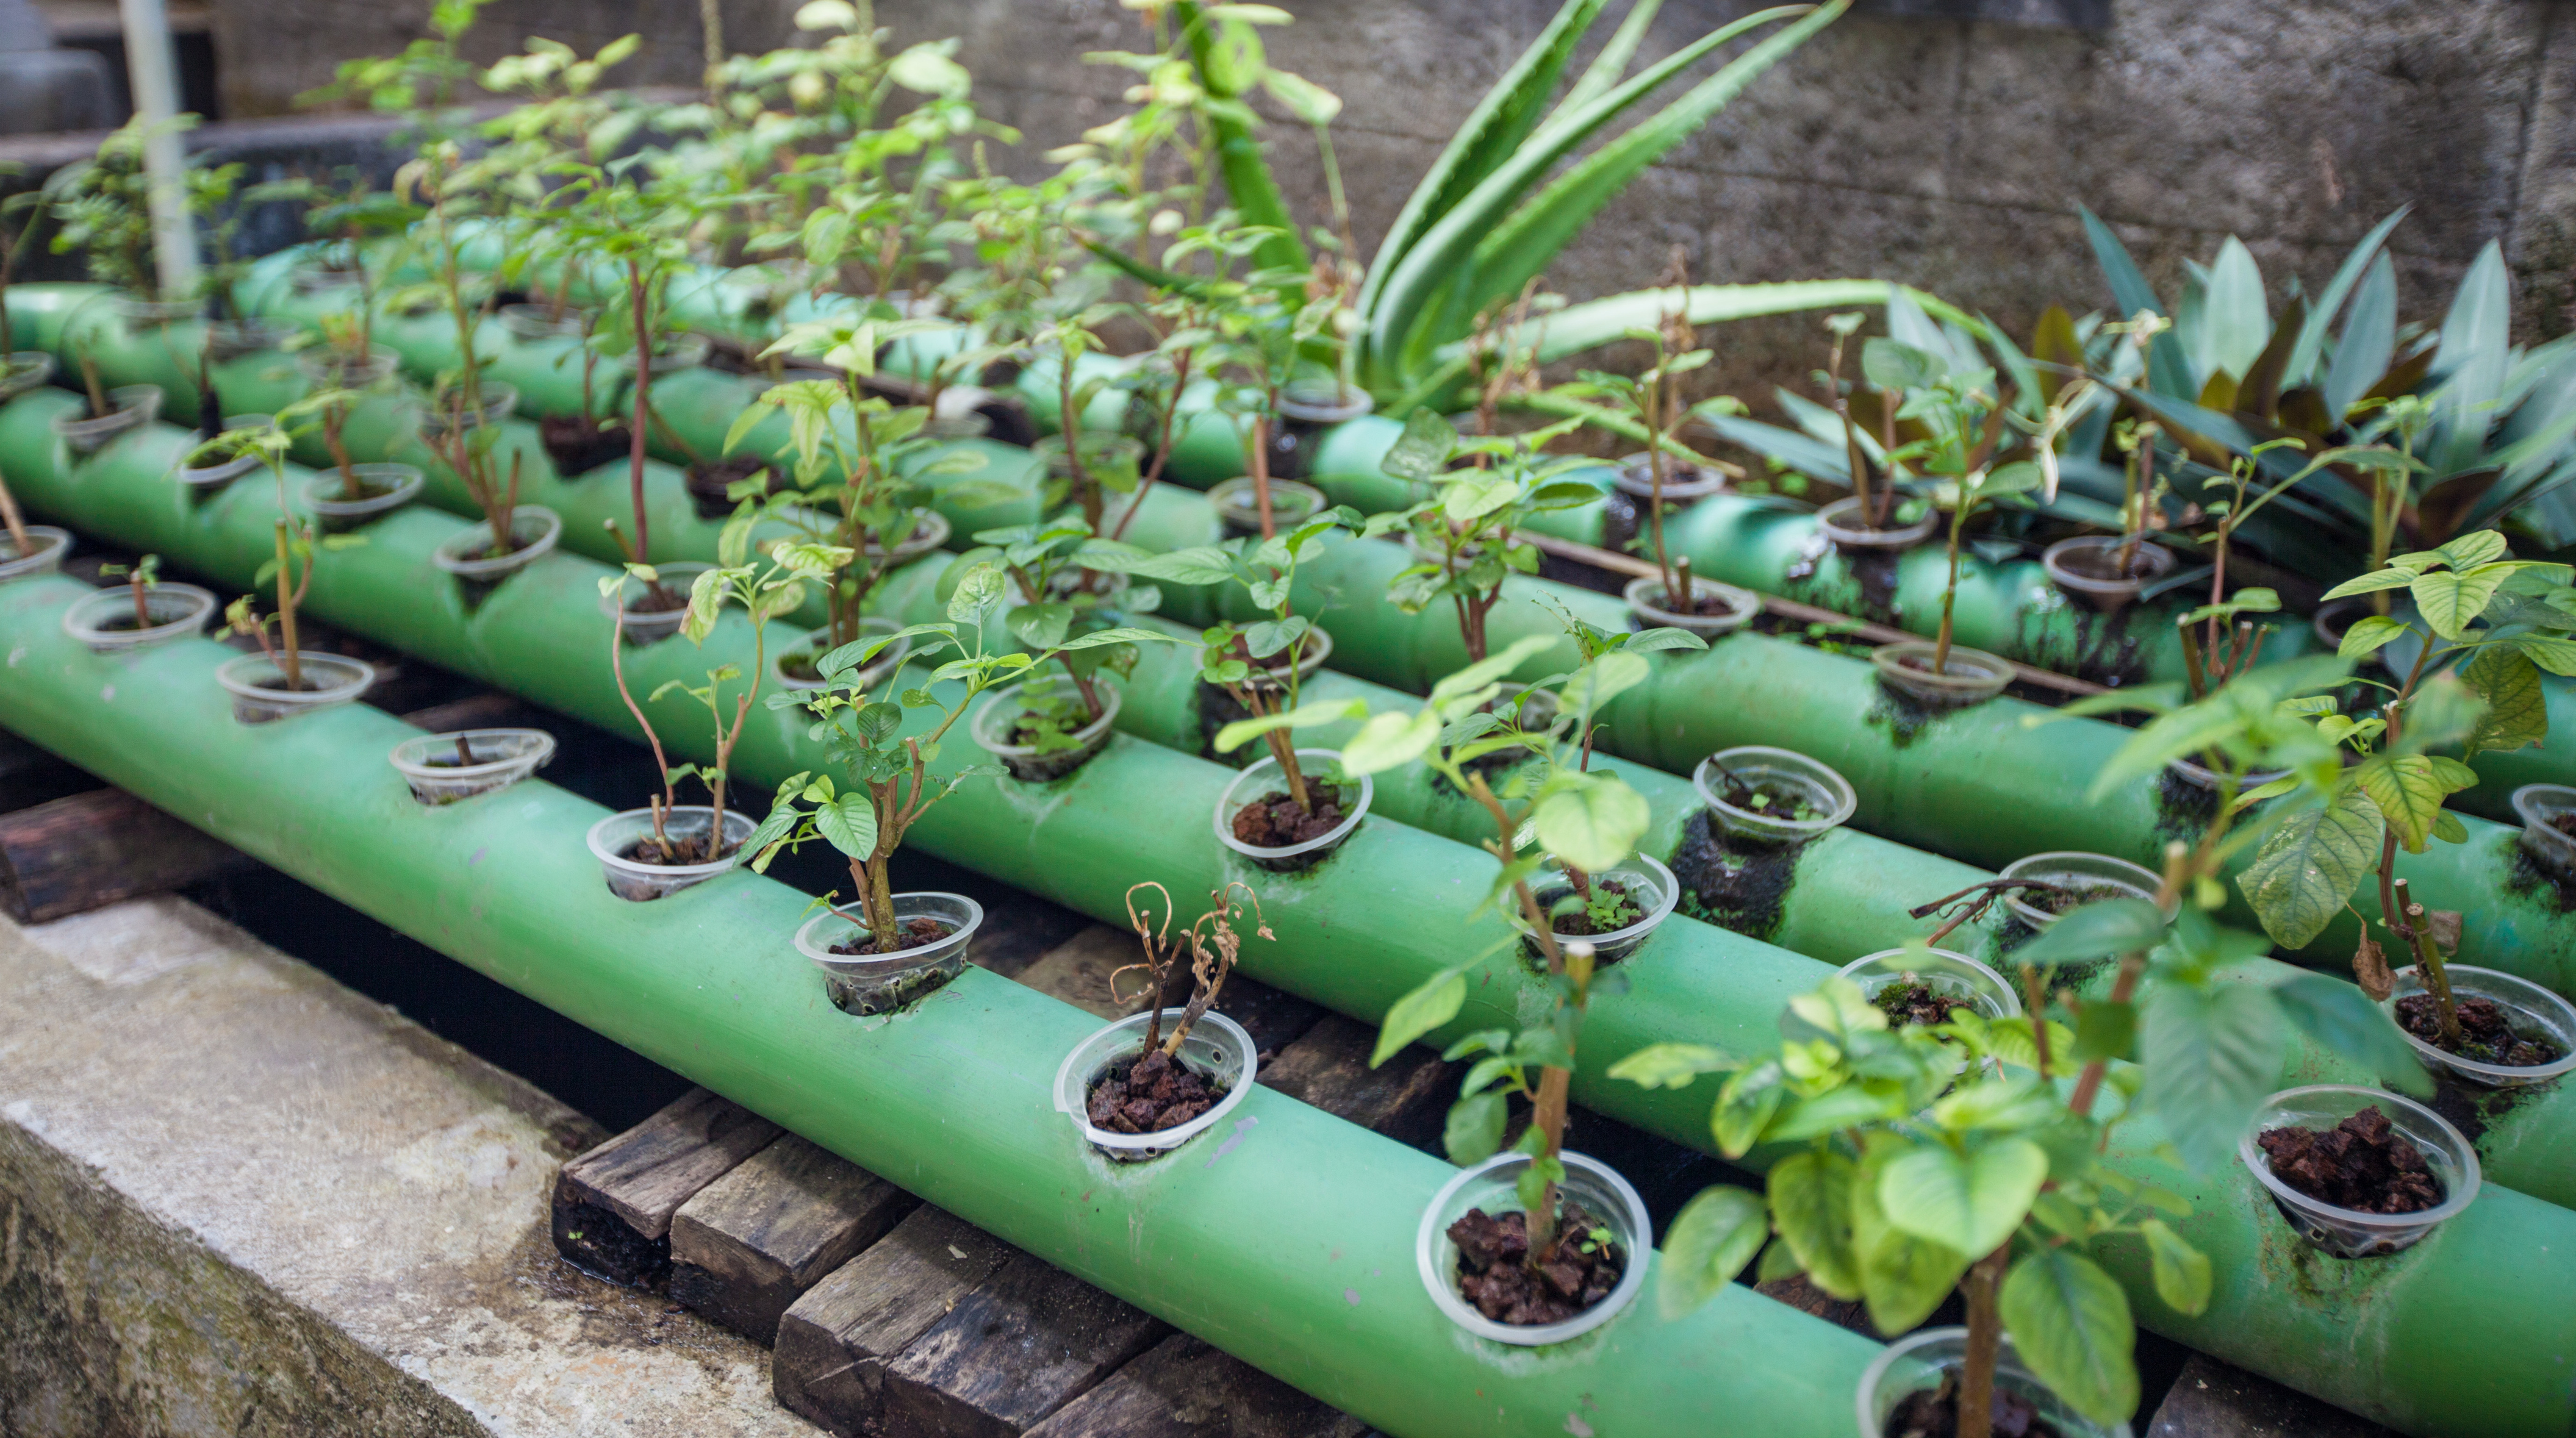 Aquaponics plants growing in metal pipes with circulating water from a fish pond, permaculture farm project.